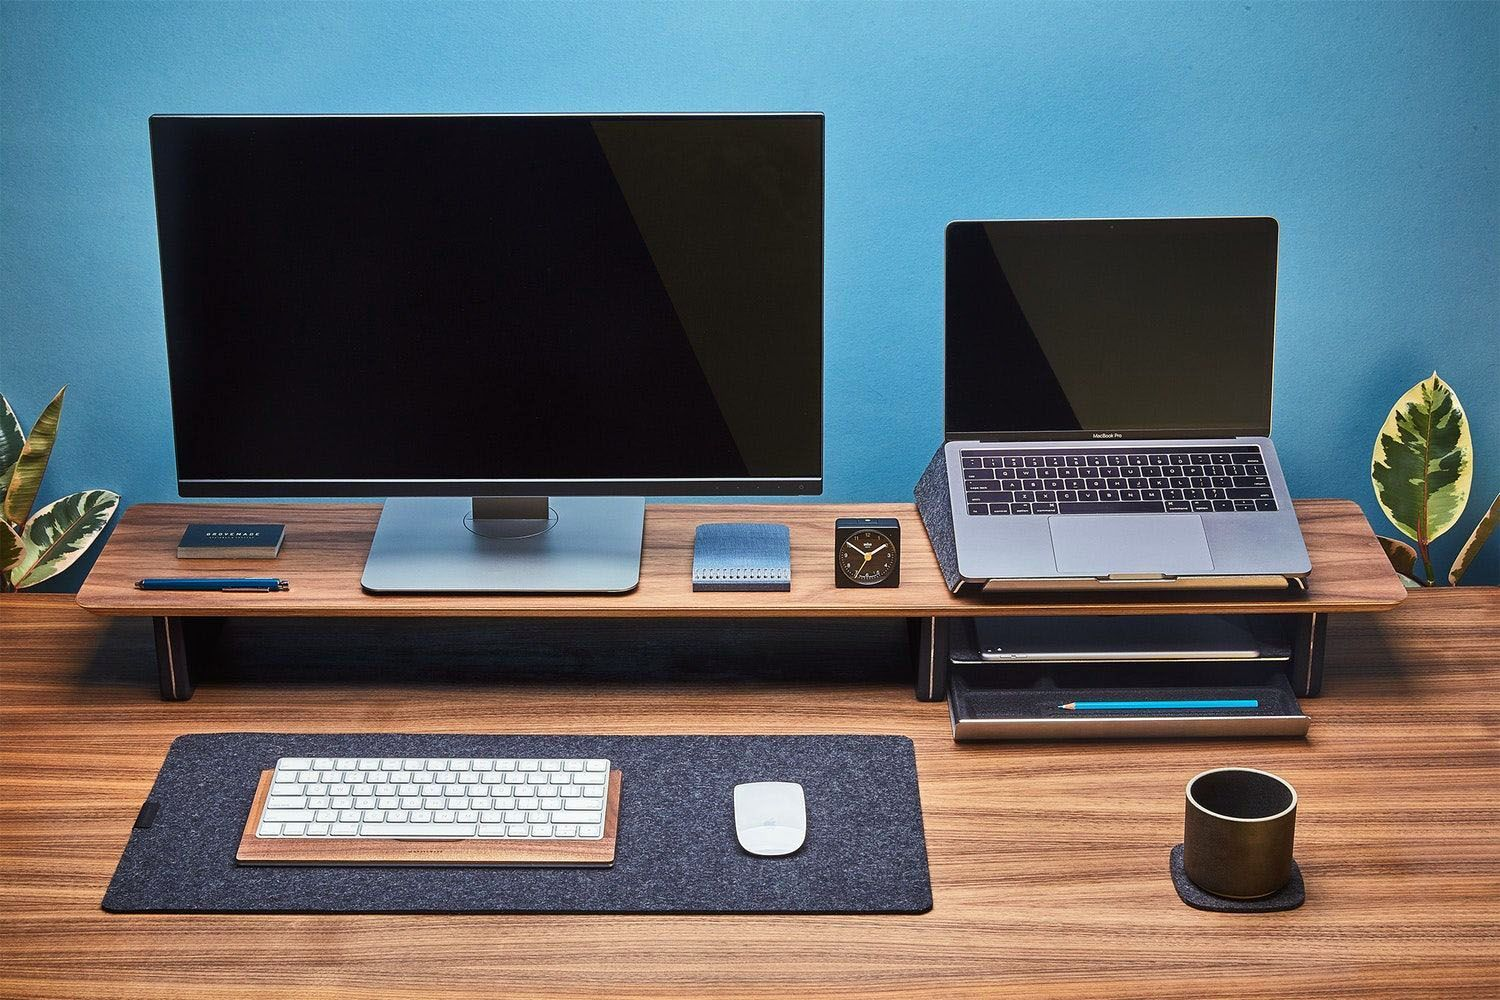 Superb Home Office Desk Amazon Uk Exclusive On Miraliva Com Home